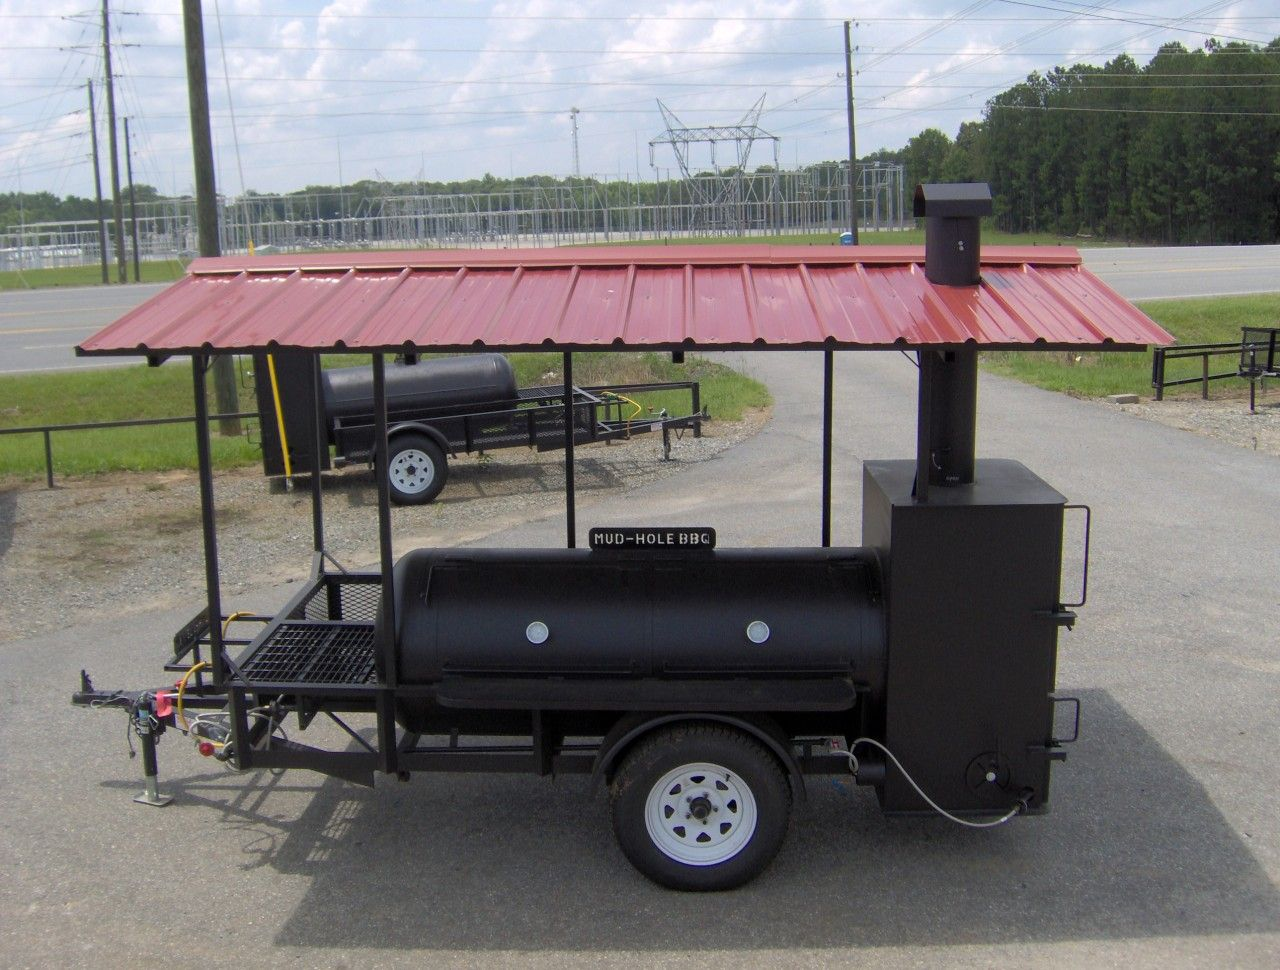 250 gal grill with canopy rib box fish fryer and storage loaded